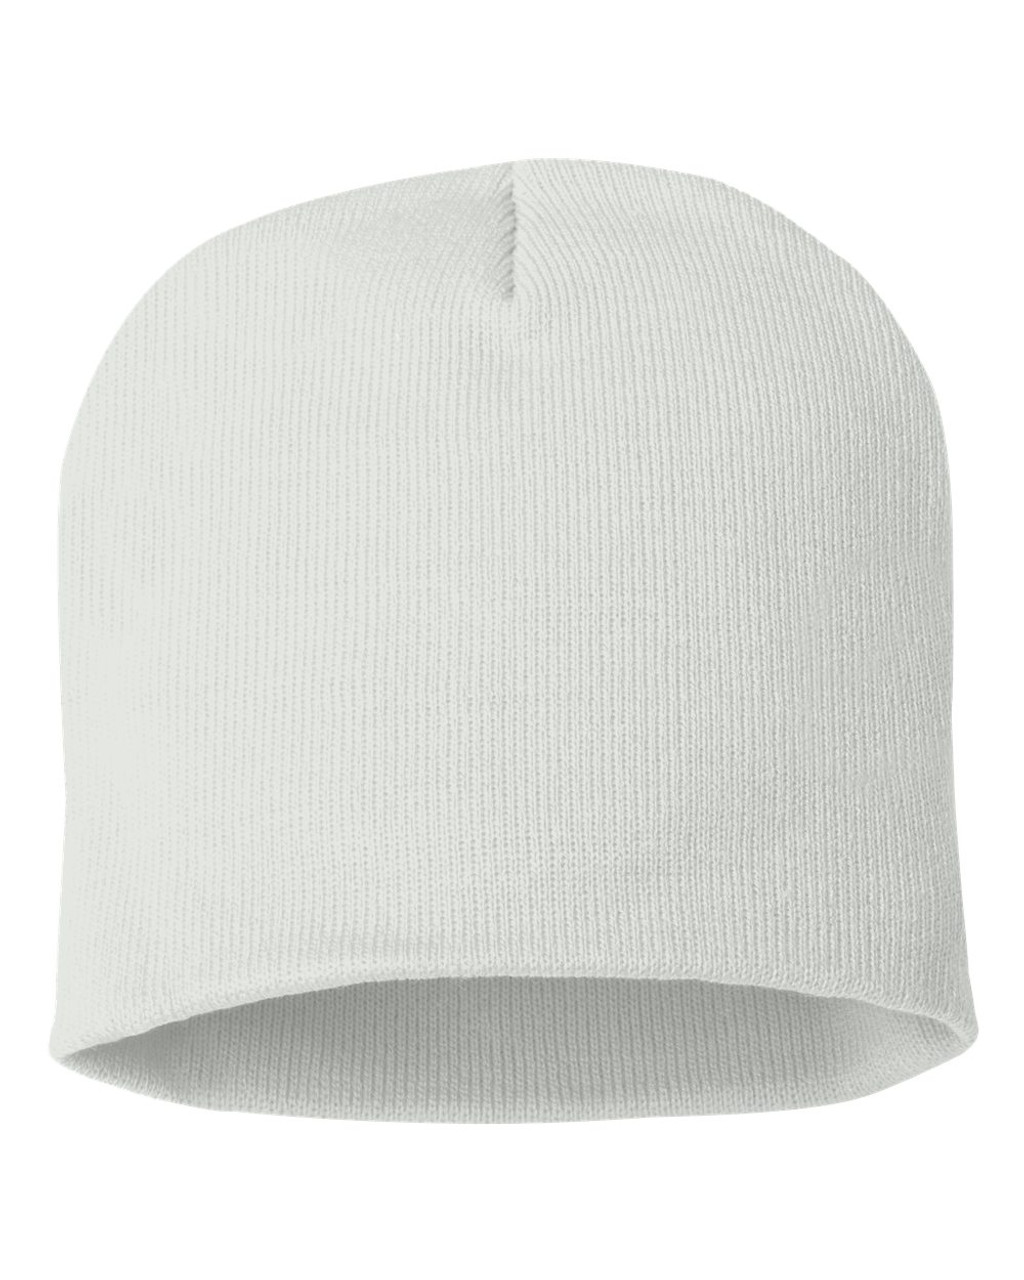 "White - SP08 Sportsman Acrylic Knit 8"" Toque 